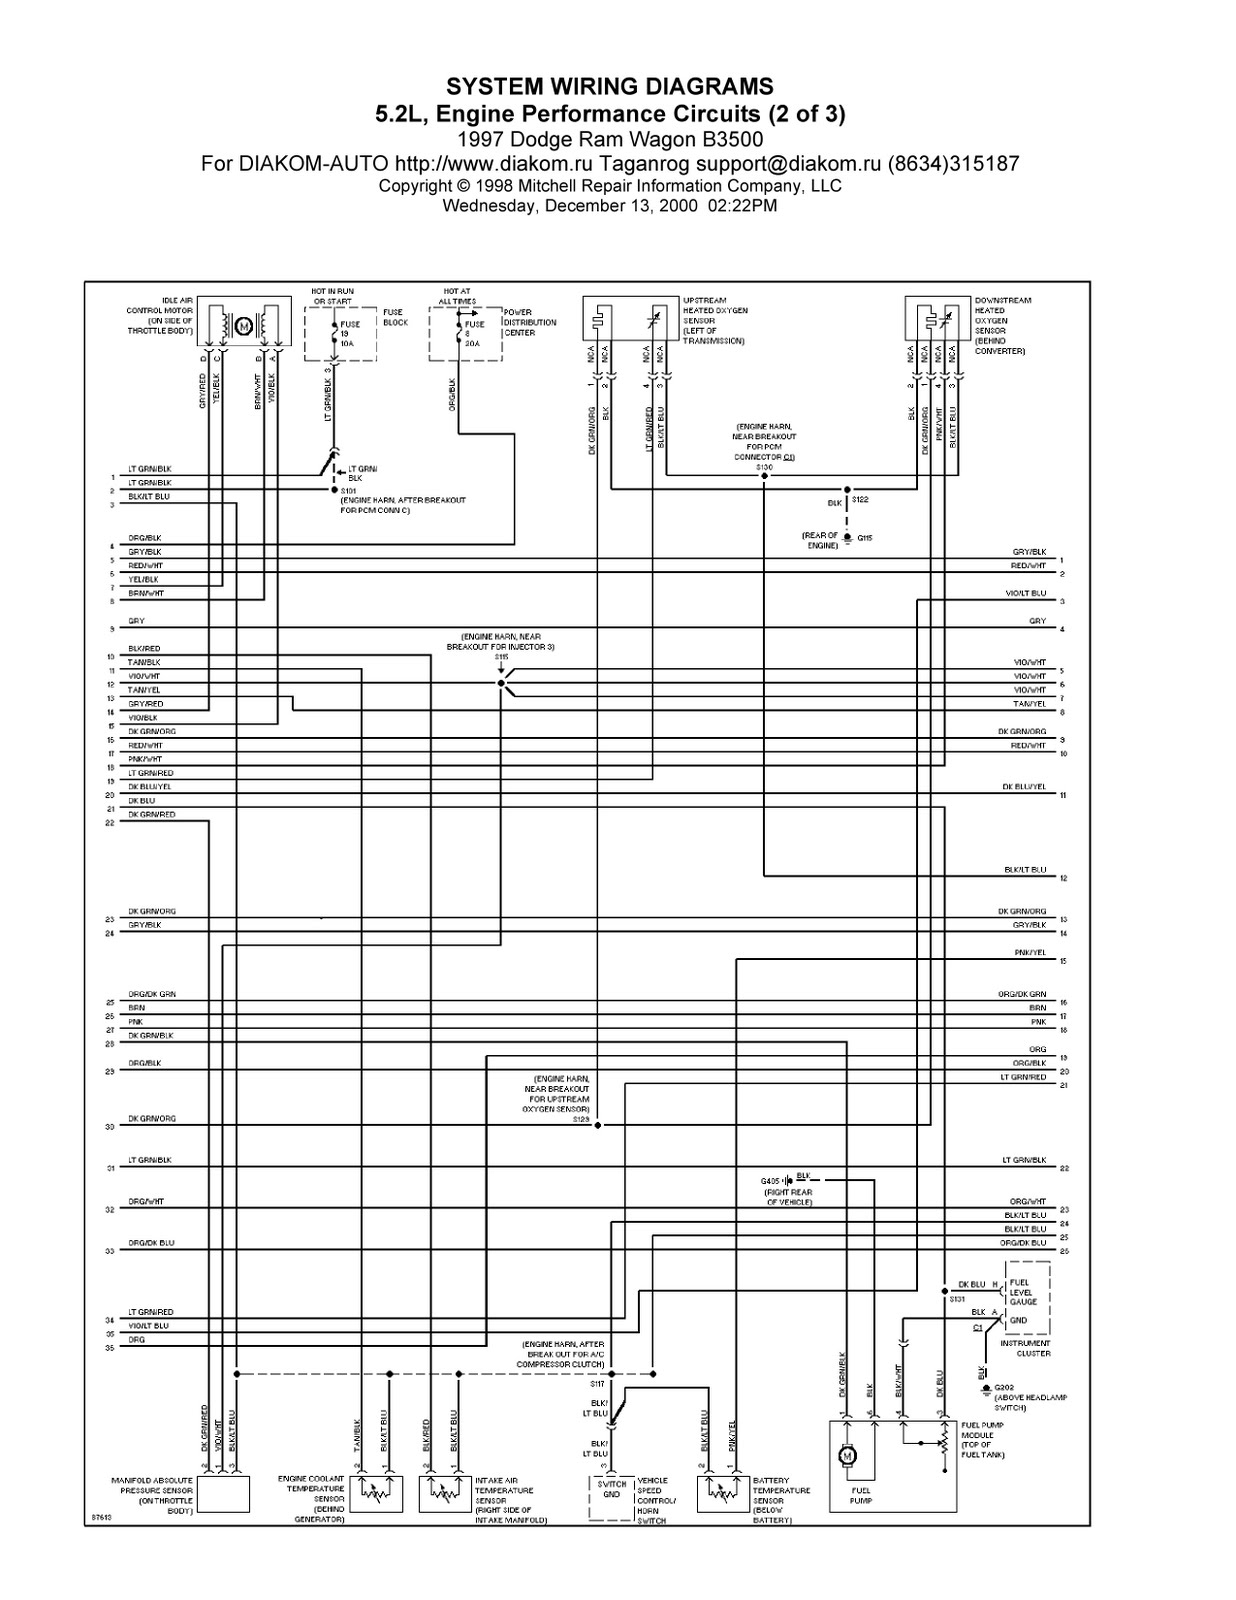 ☑ 1998 Dodge 1500 Wiring Diagram HD Quality ☑ express-g-diagram .twirlinglucca.itTwirlinglucca.it